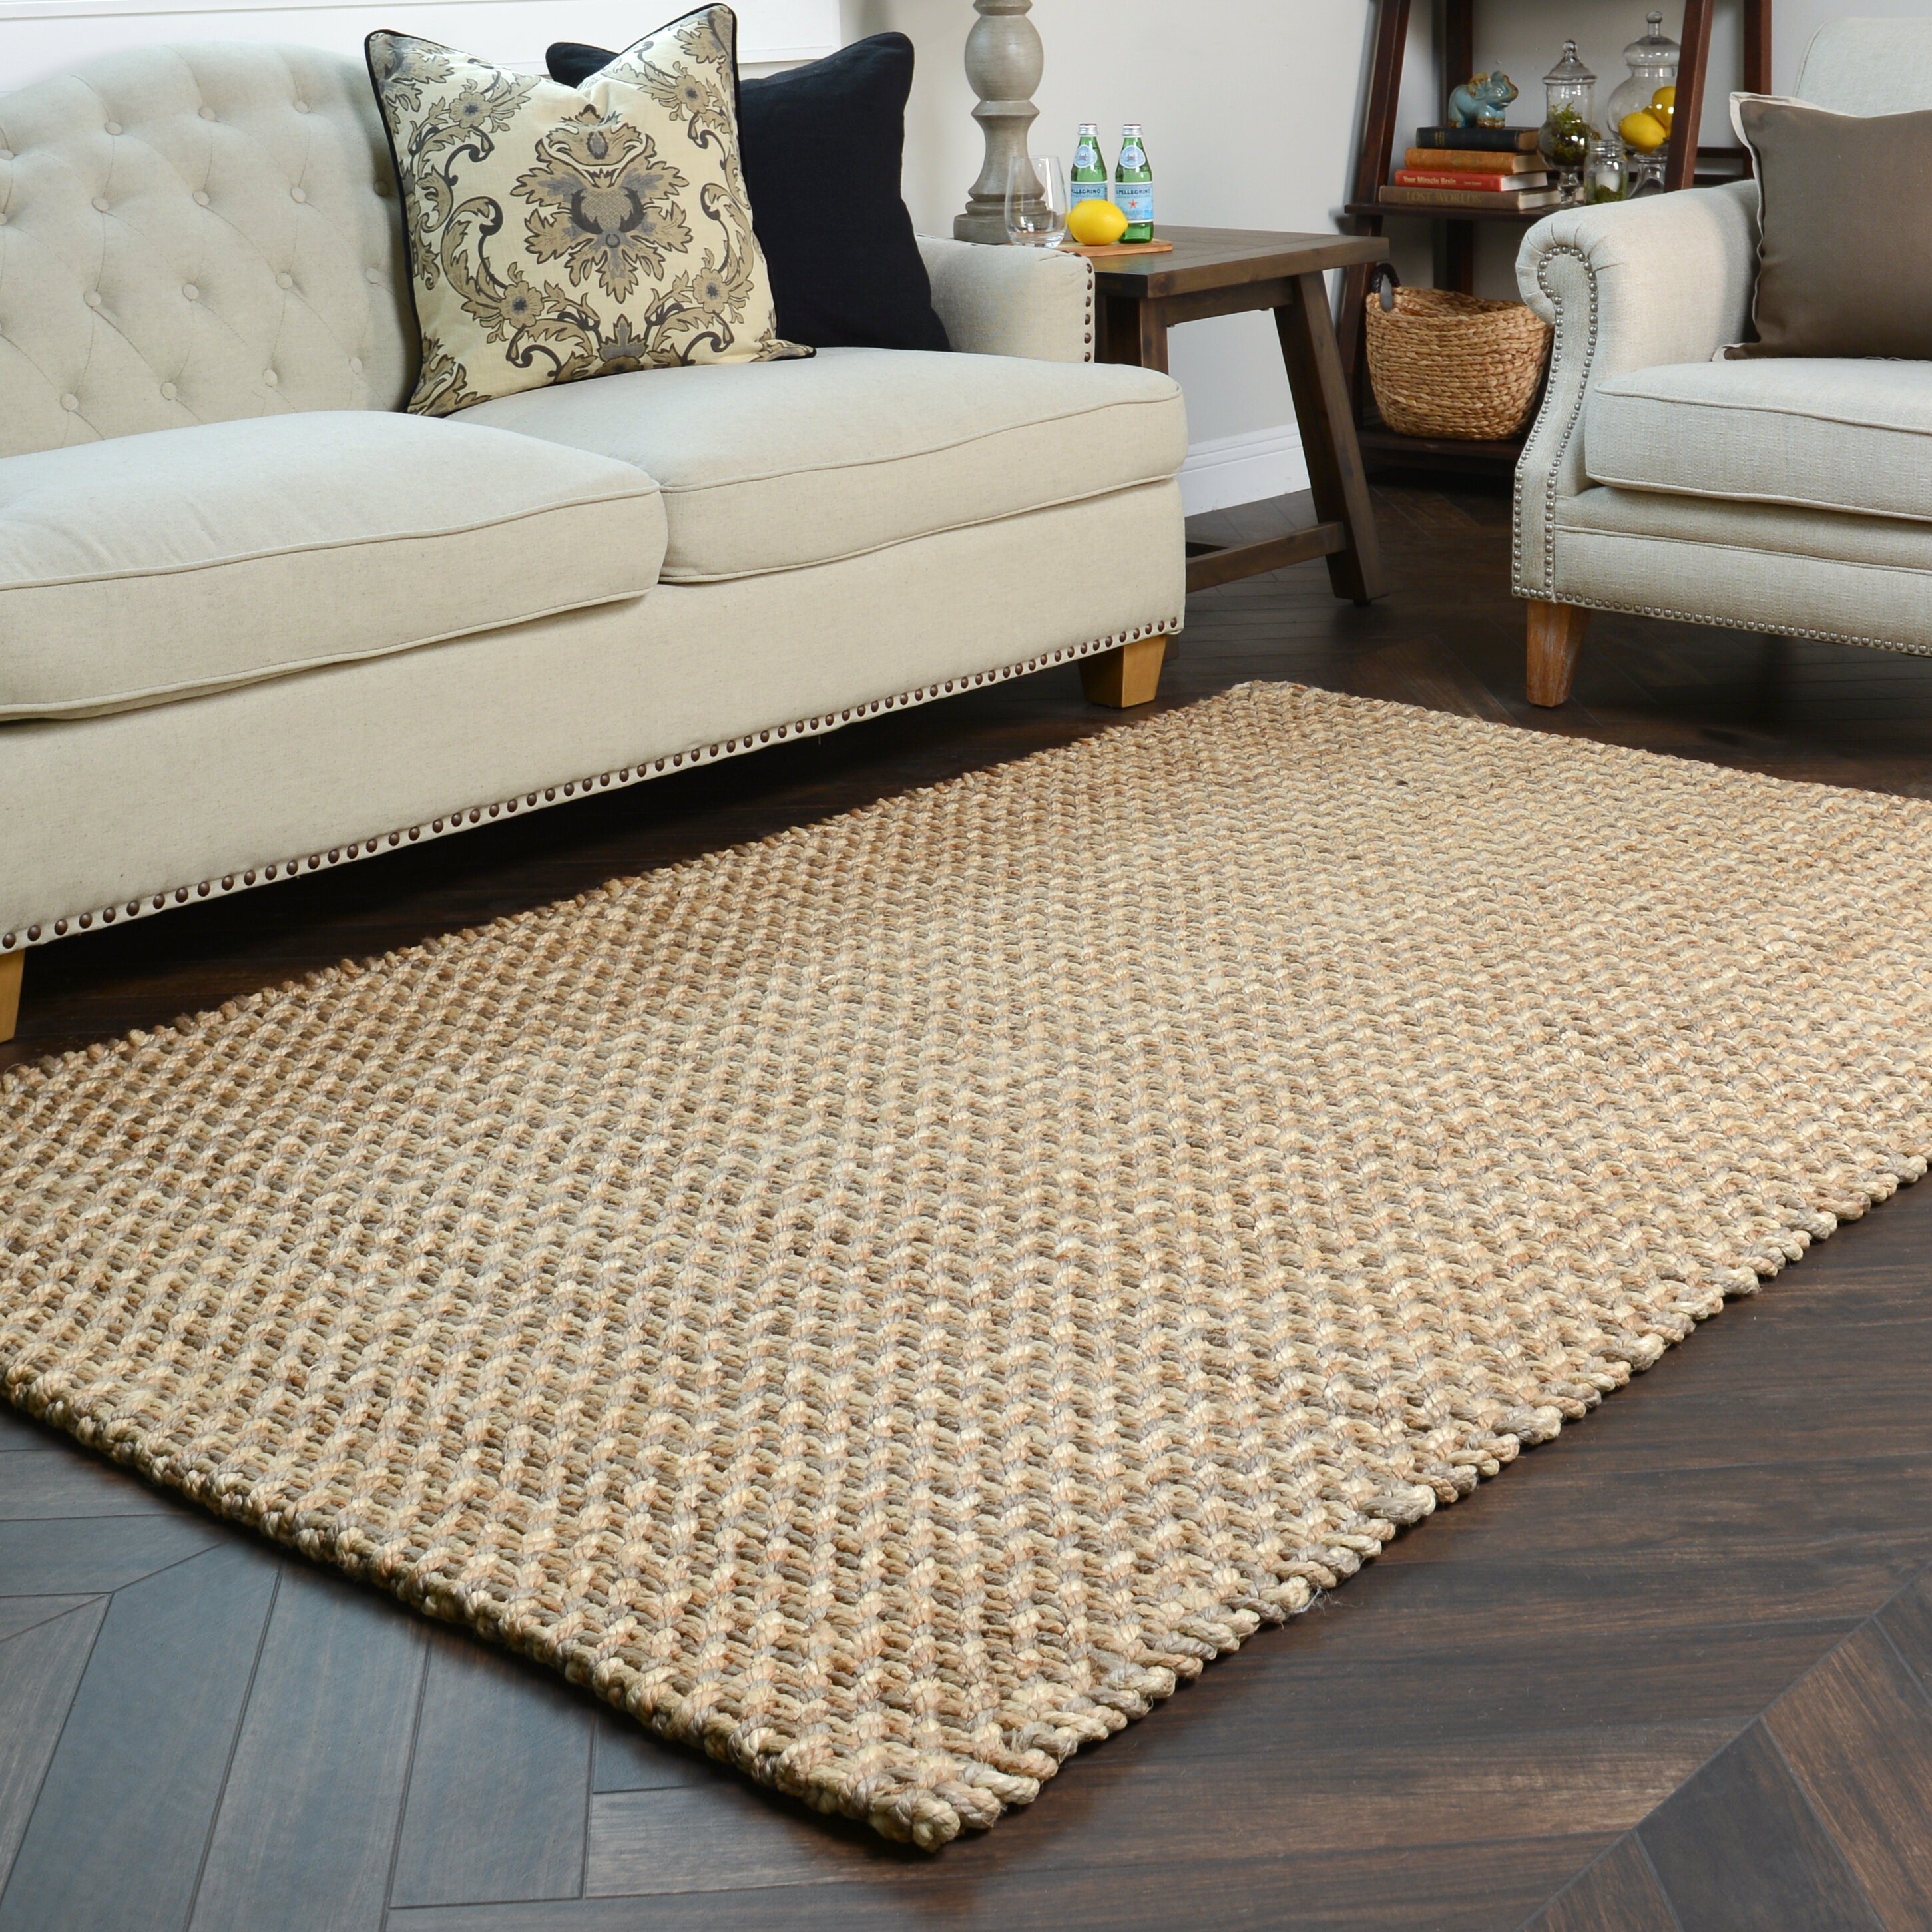 2019 year for girls- Carpets stylish conroe